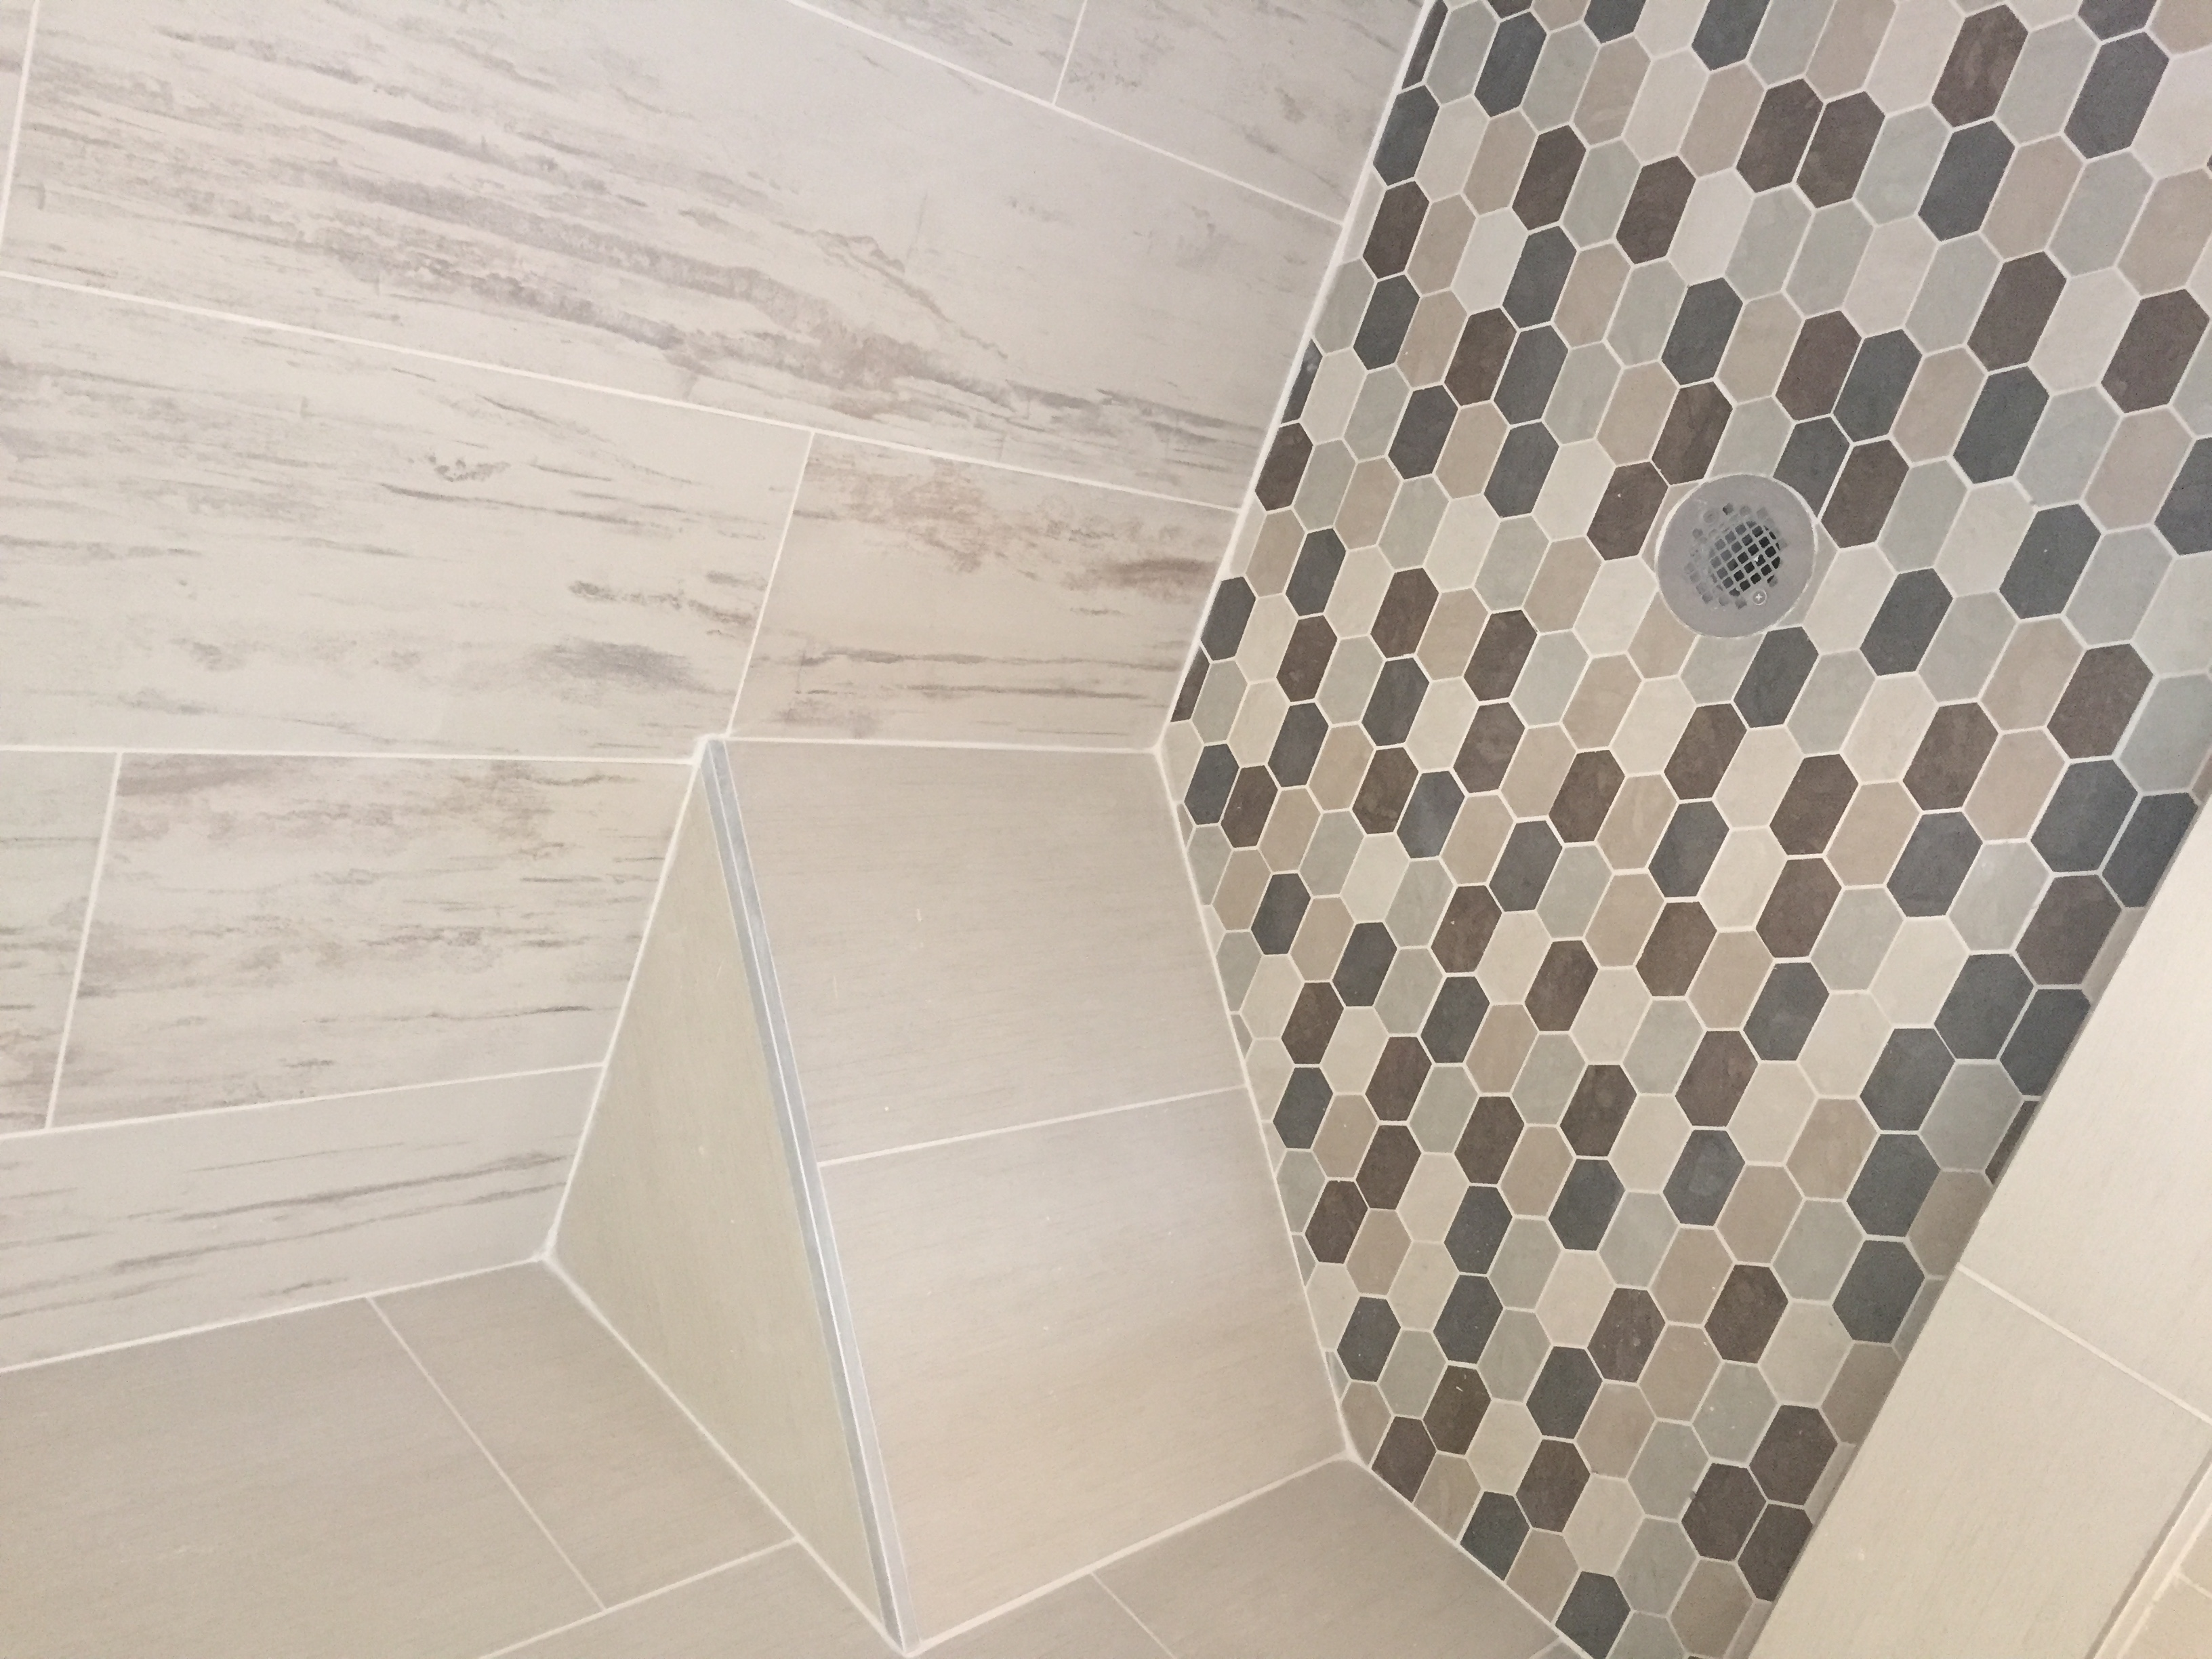 Shower Step and Mosaic Floor